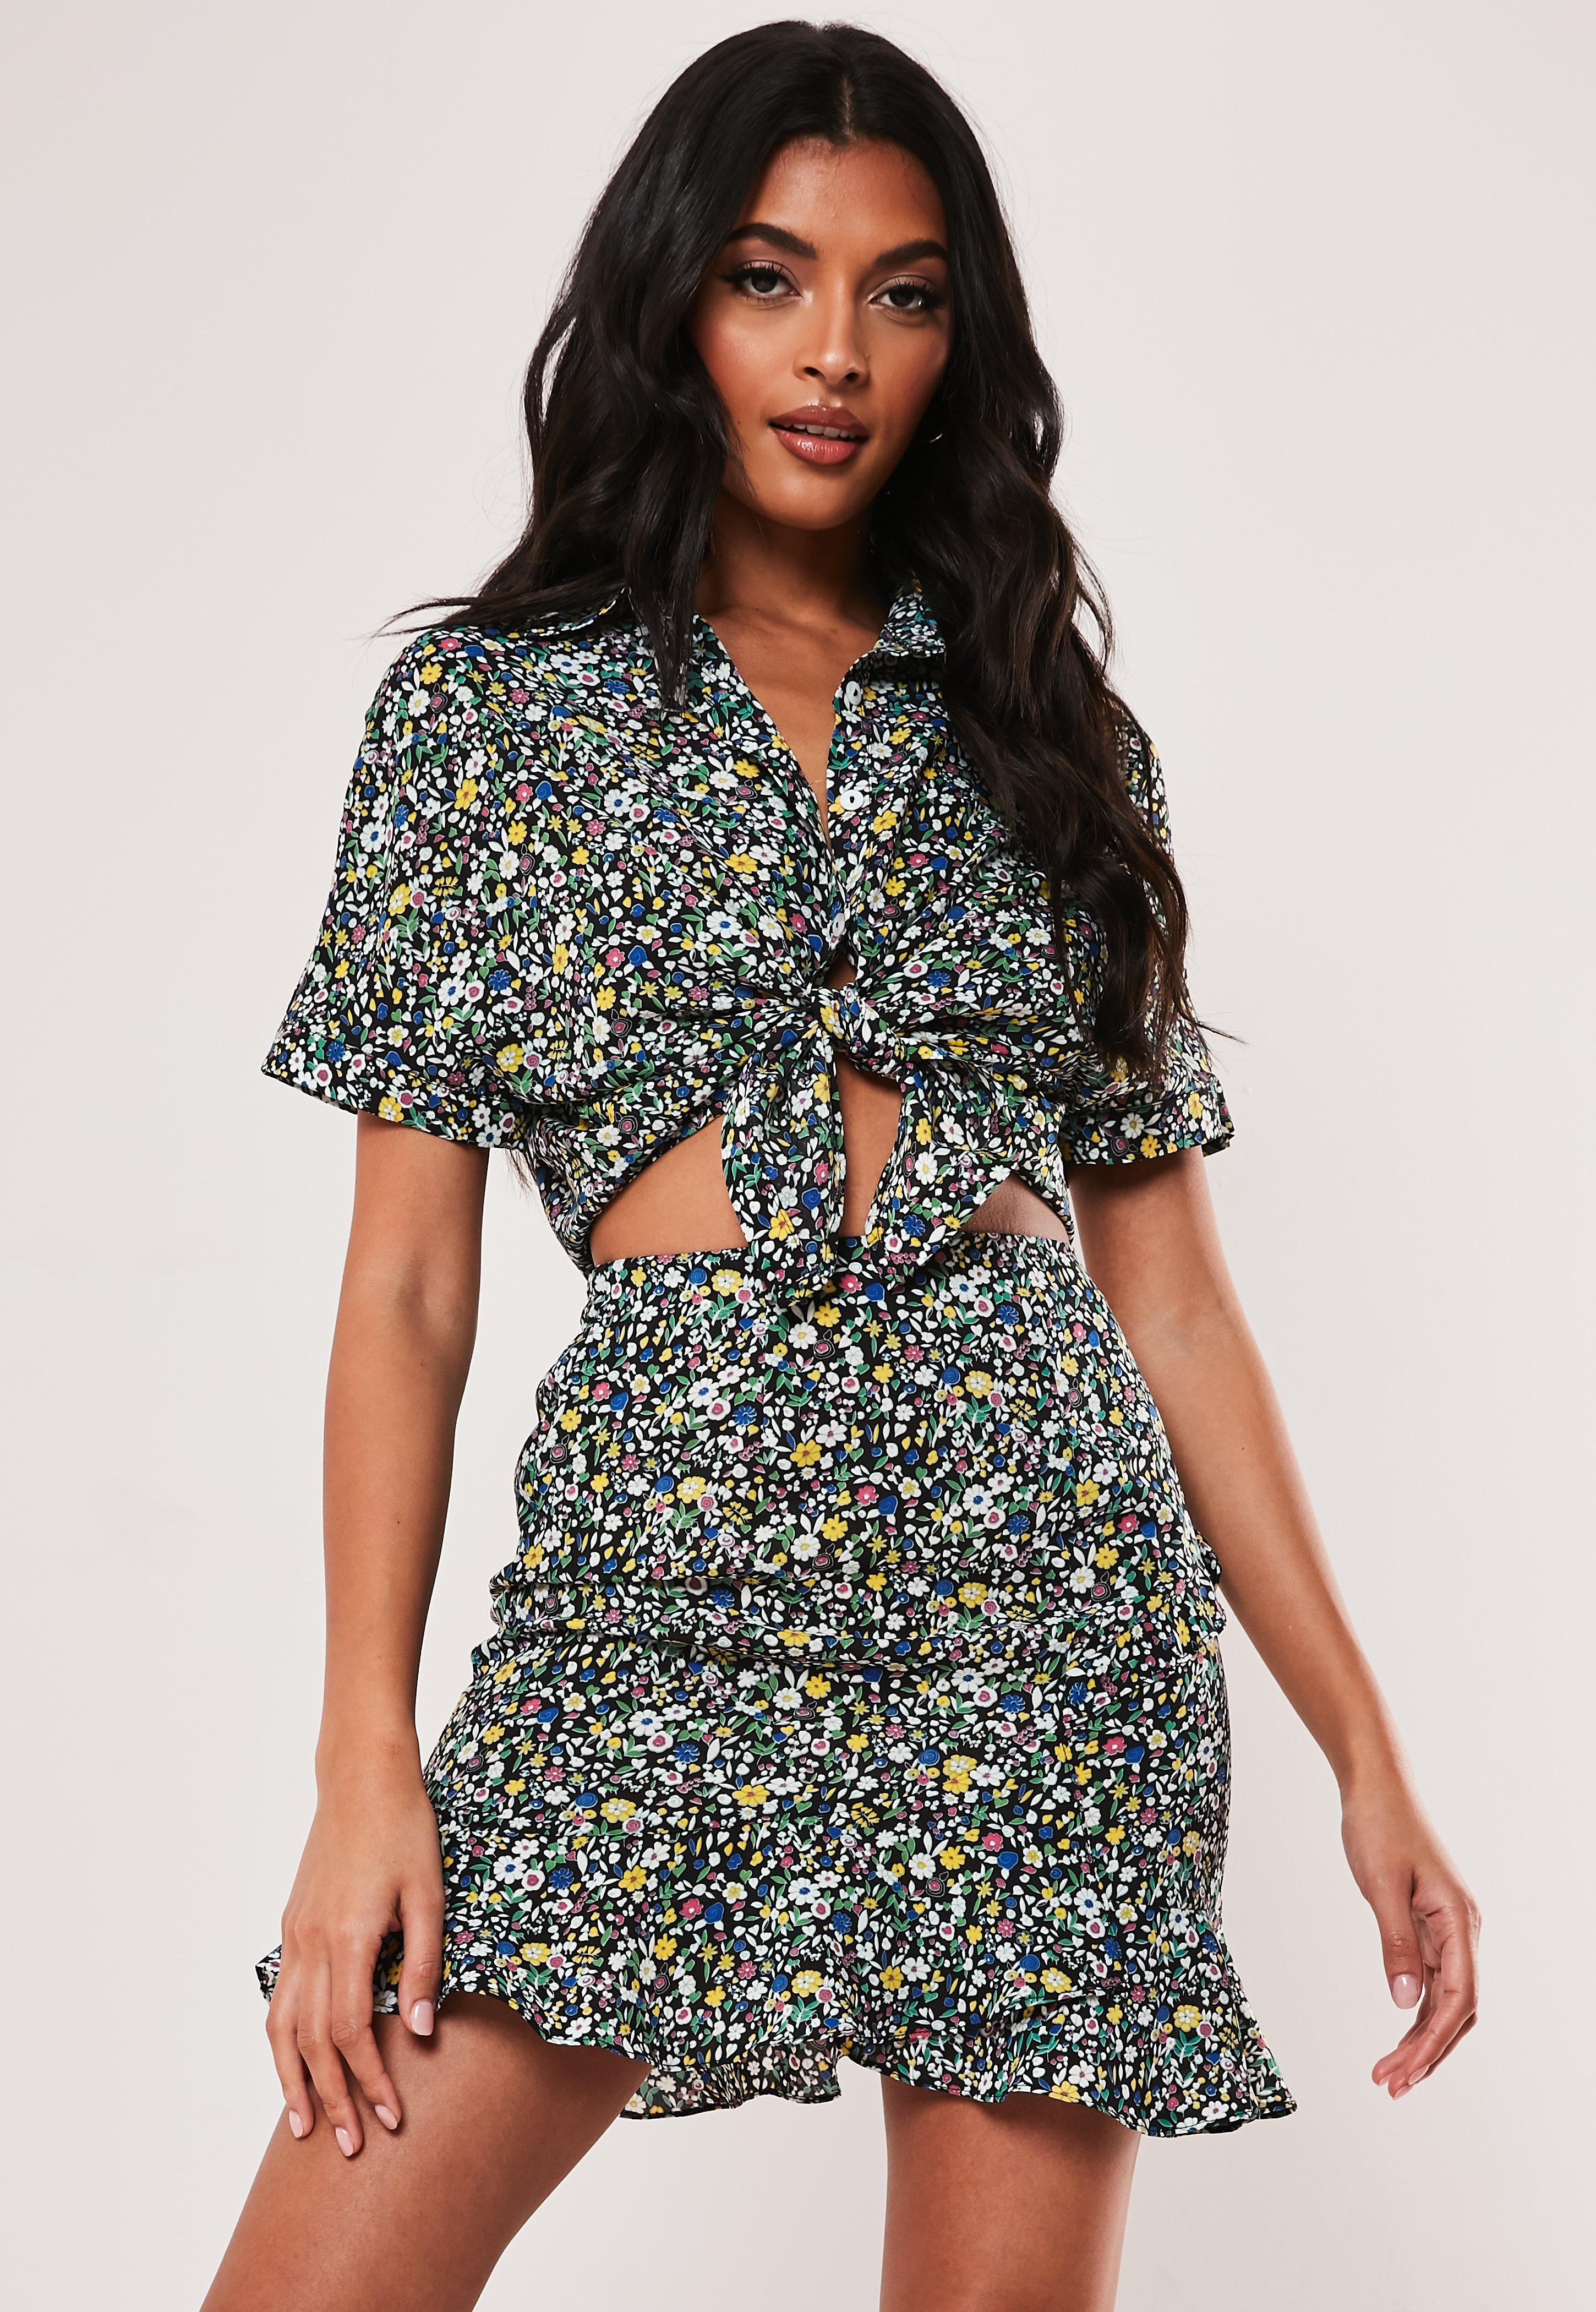 d91b51877dde2b Floral Tops | Flowery Print Tops - Missguided